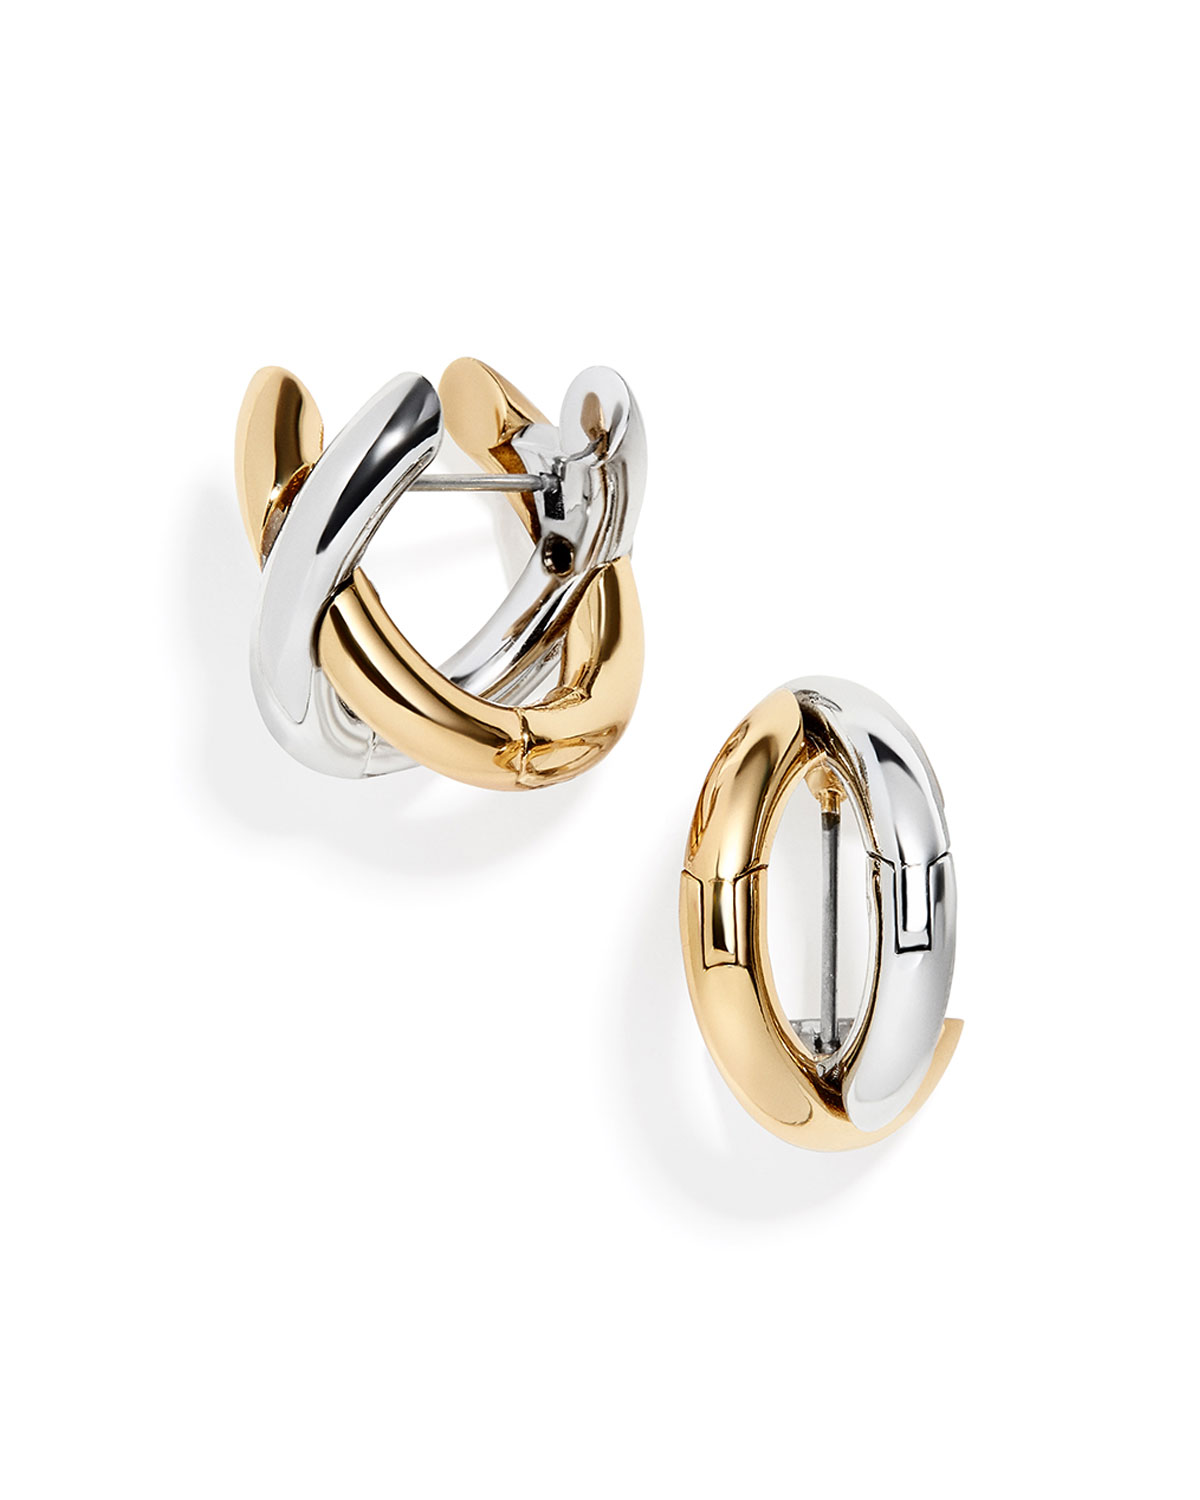 Gold and Silver X-Hoop Earrings